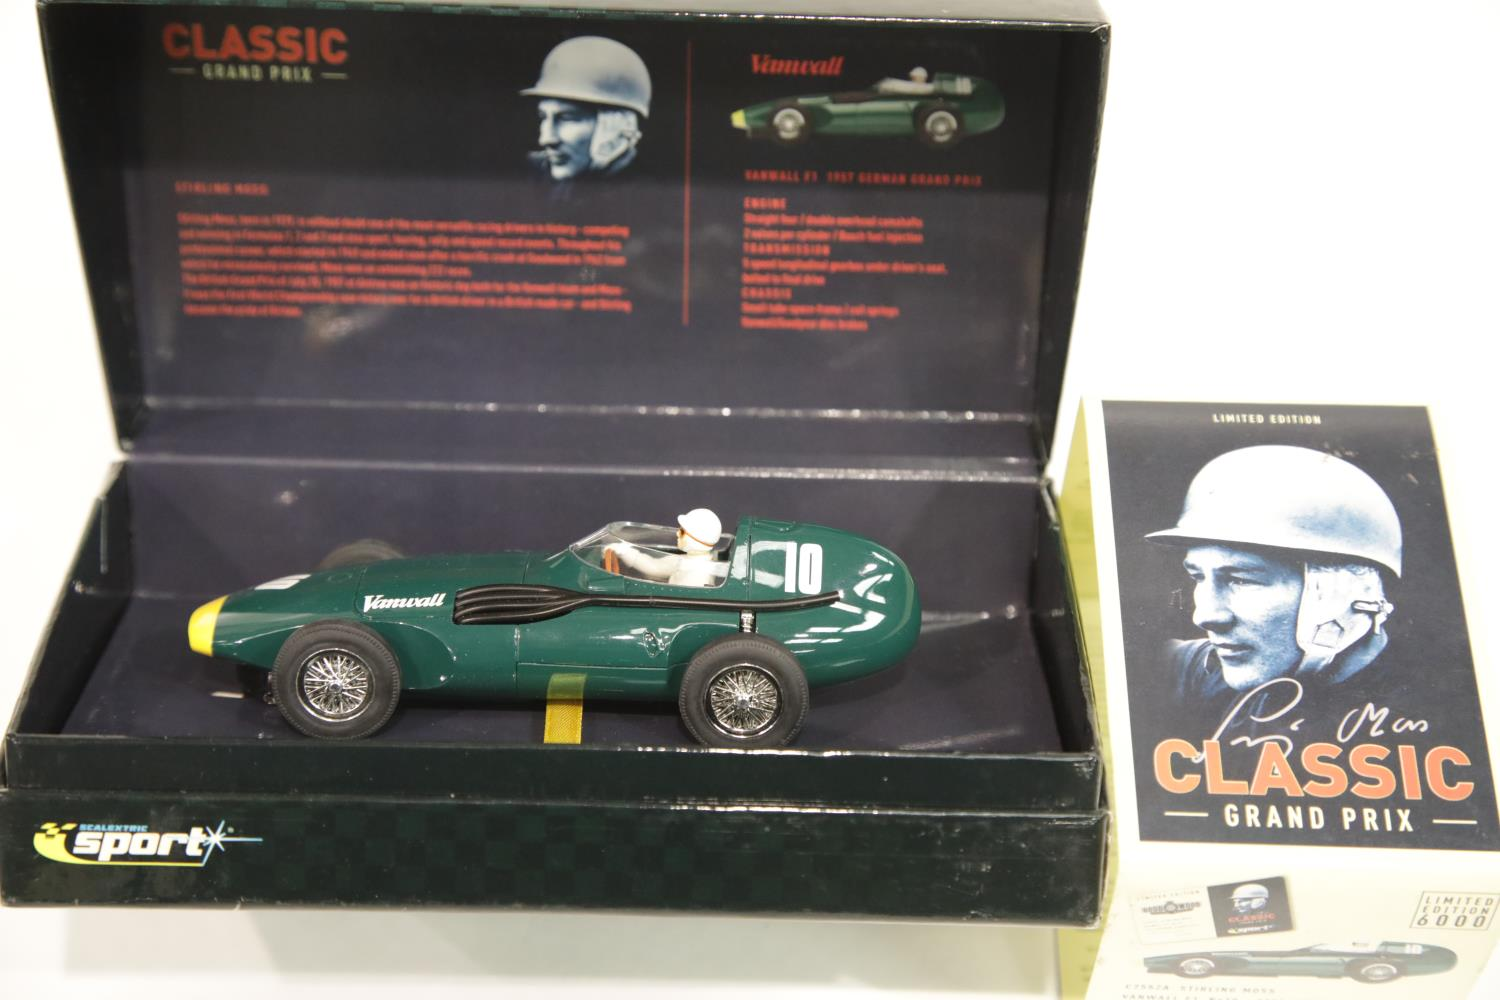 Lot 685 - Scalextric C2552A Vanwall F1 Stirling Moss 1957 Goodwood Revival. P&P Group 1 (£14+VAT for the first